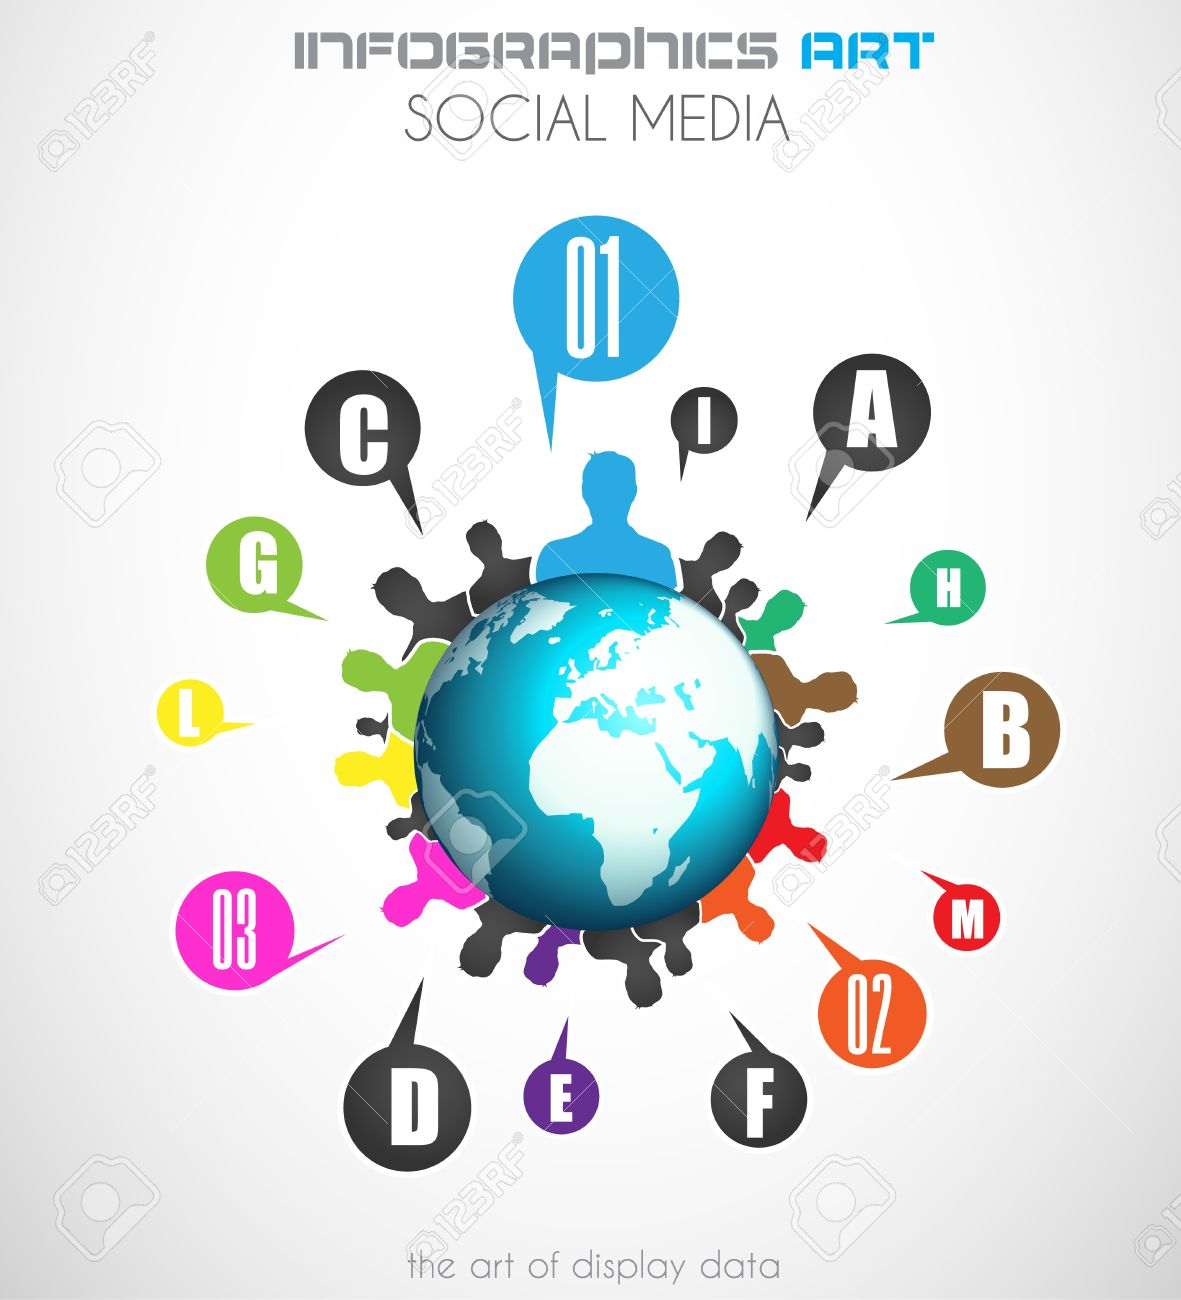 Worldwide communication and social media concept art. People communicating around the globe with a lot of connections. Stock Vector - 21316552